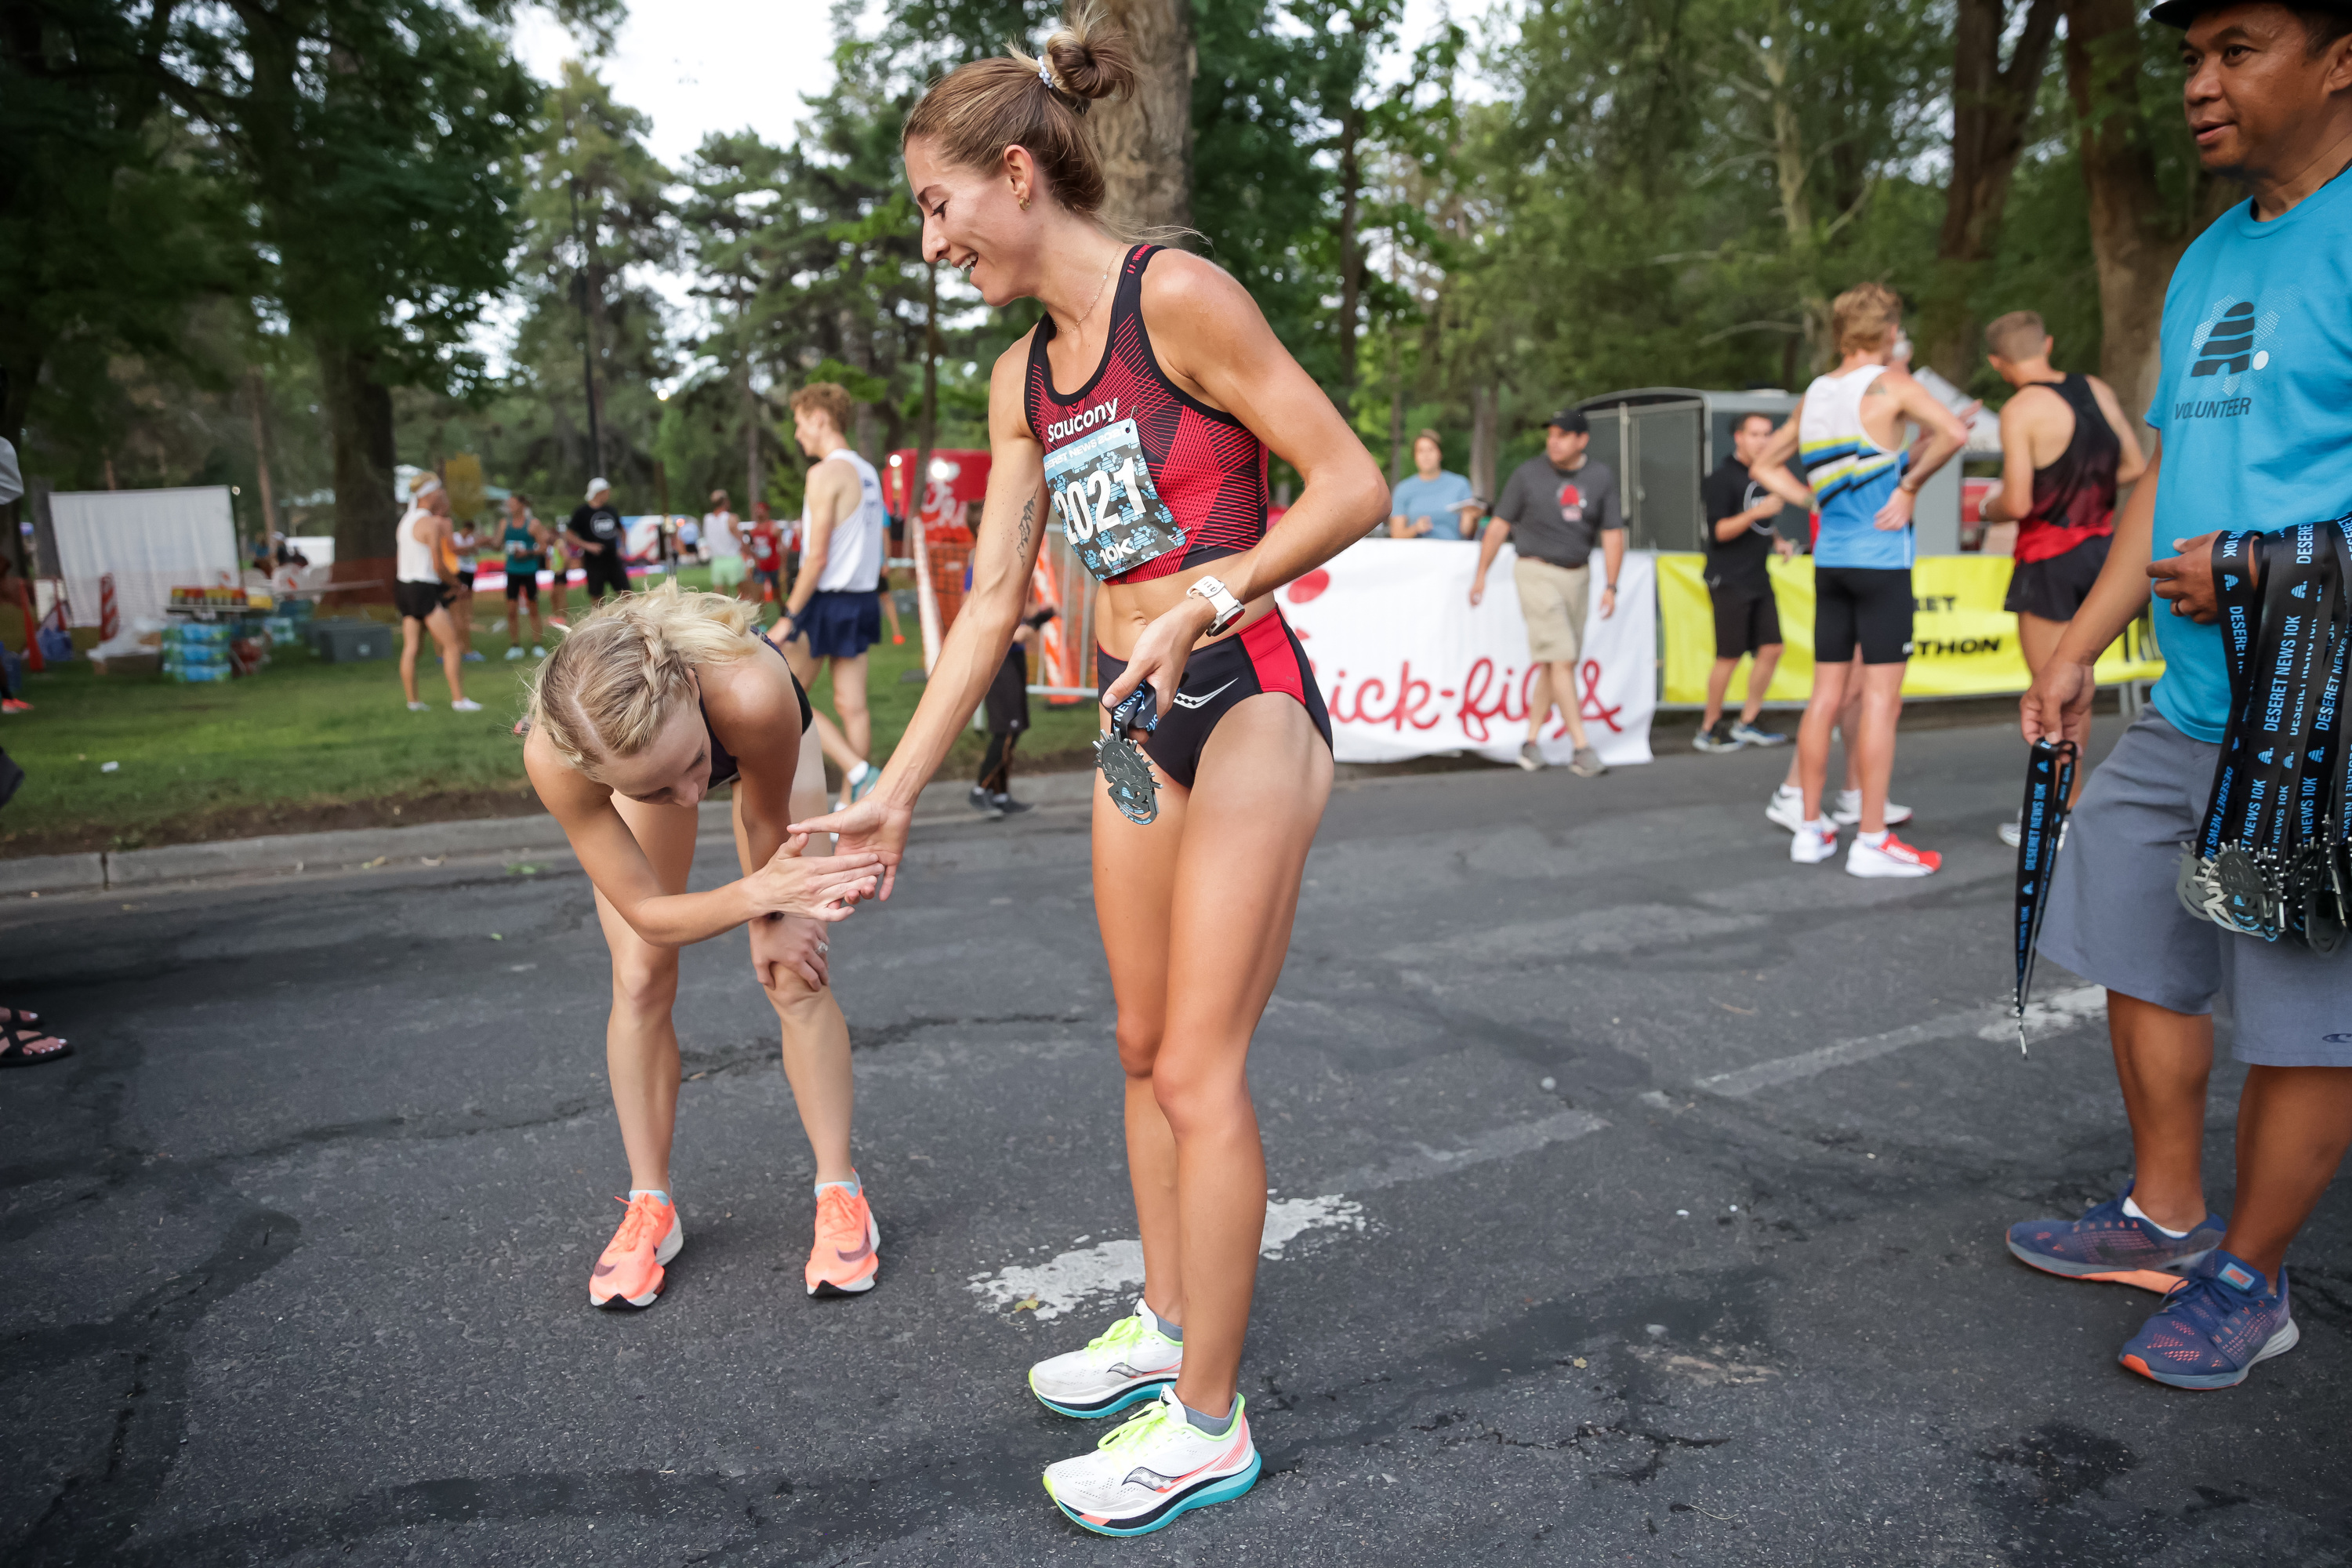 Grayson Murphy, right, who won the women's division of the Deseret News 10K, congratulates second-place finisher Lexie Thompson at Liberty Park in Salt Lake City on Friday, July 23, 2021.